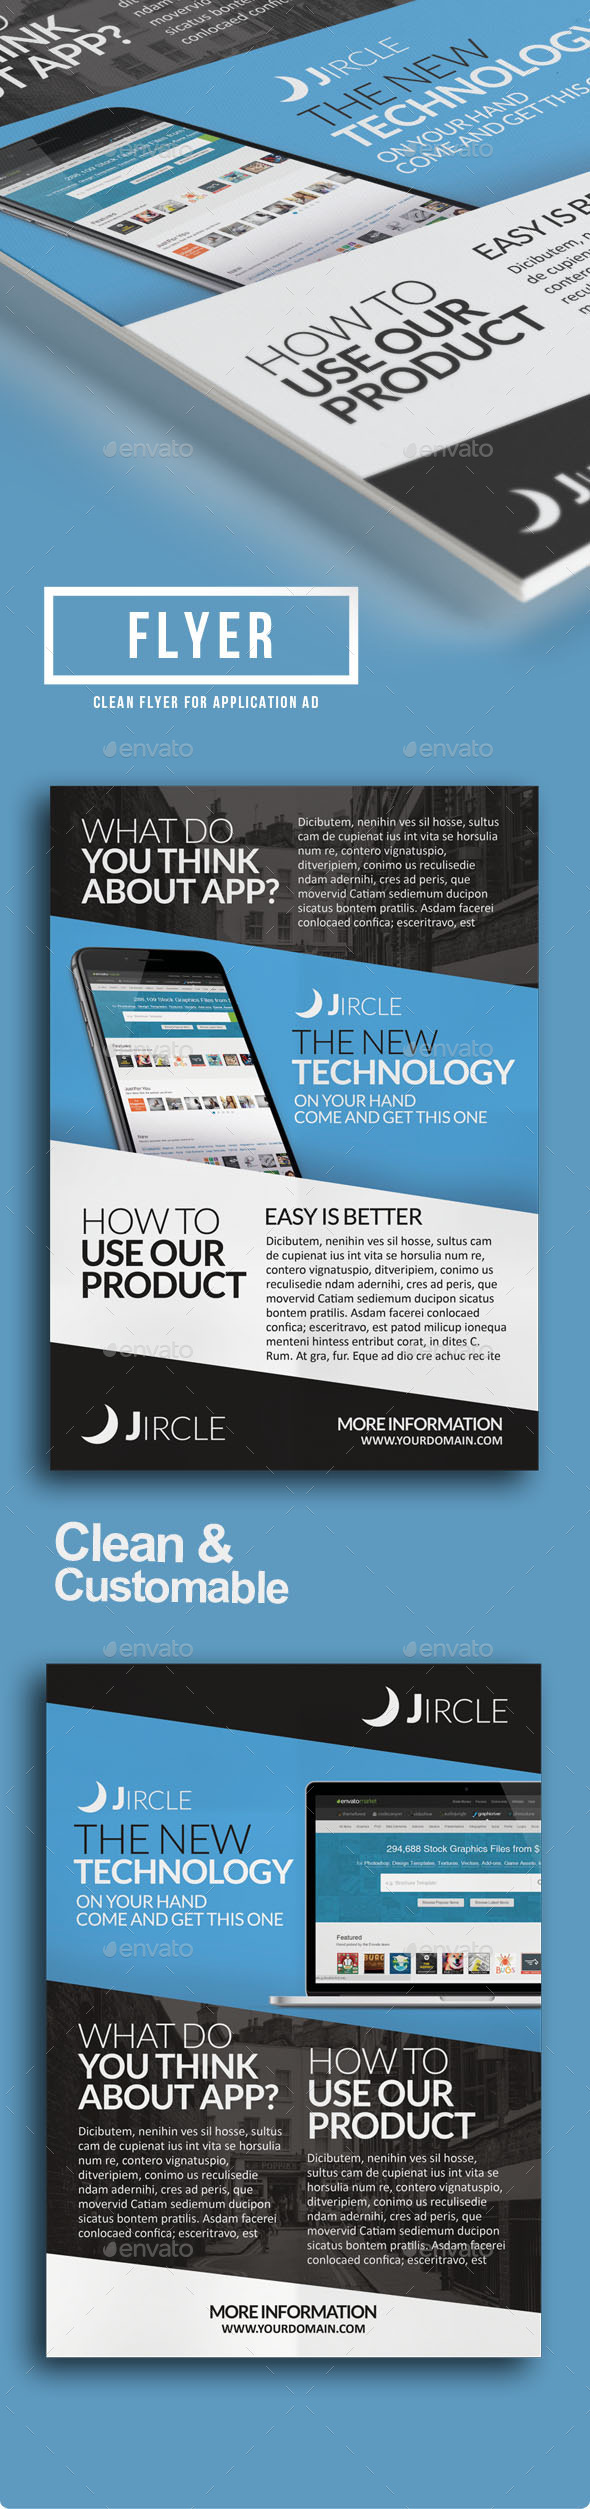 App Promotion Flyer - Commerce Flyers